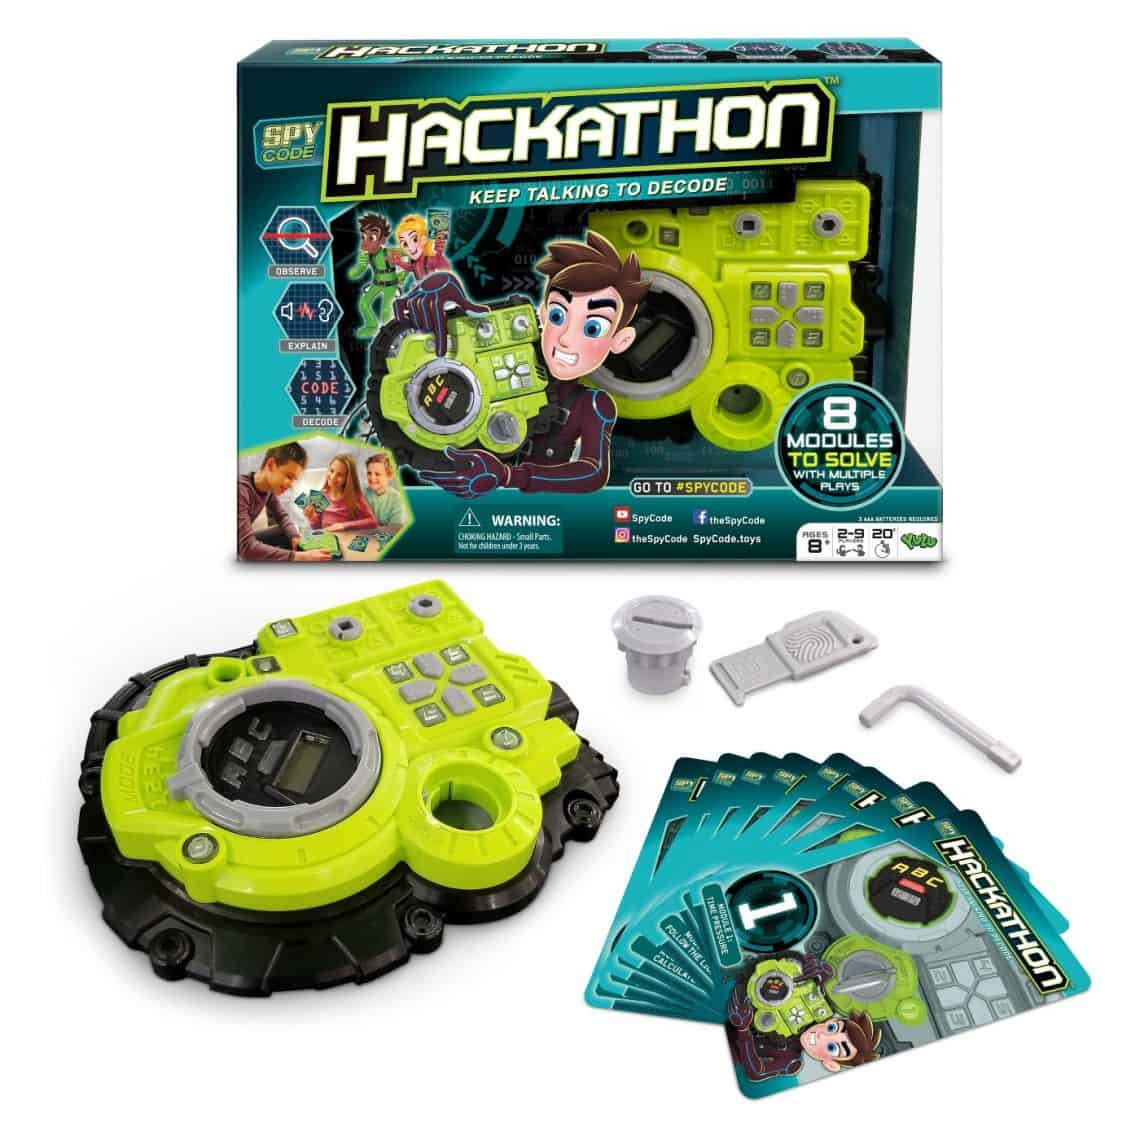 GUEST 10a2e3e3 a030 4fb0 9f79 b2ebf3c8d9e1 1140x1140 - 2018 Holiday Gift Guide for Kids